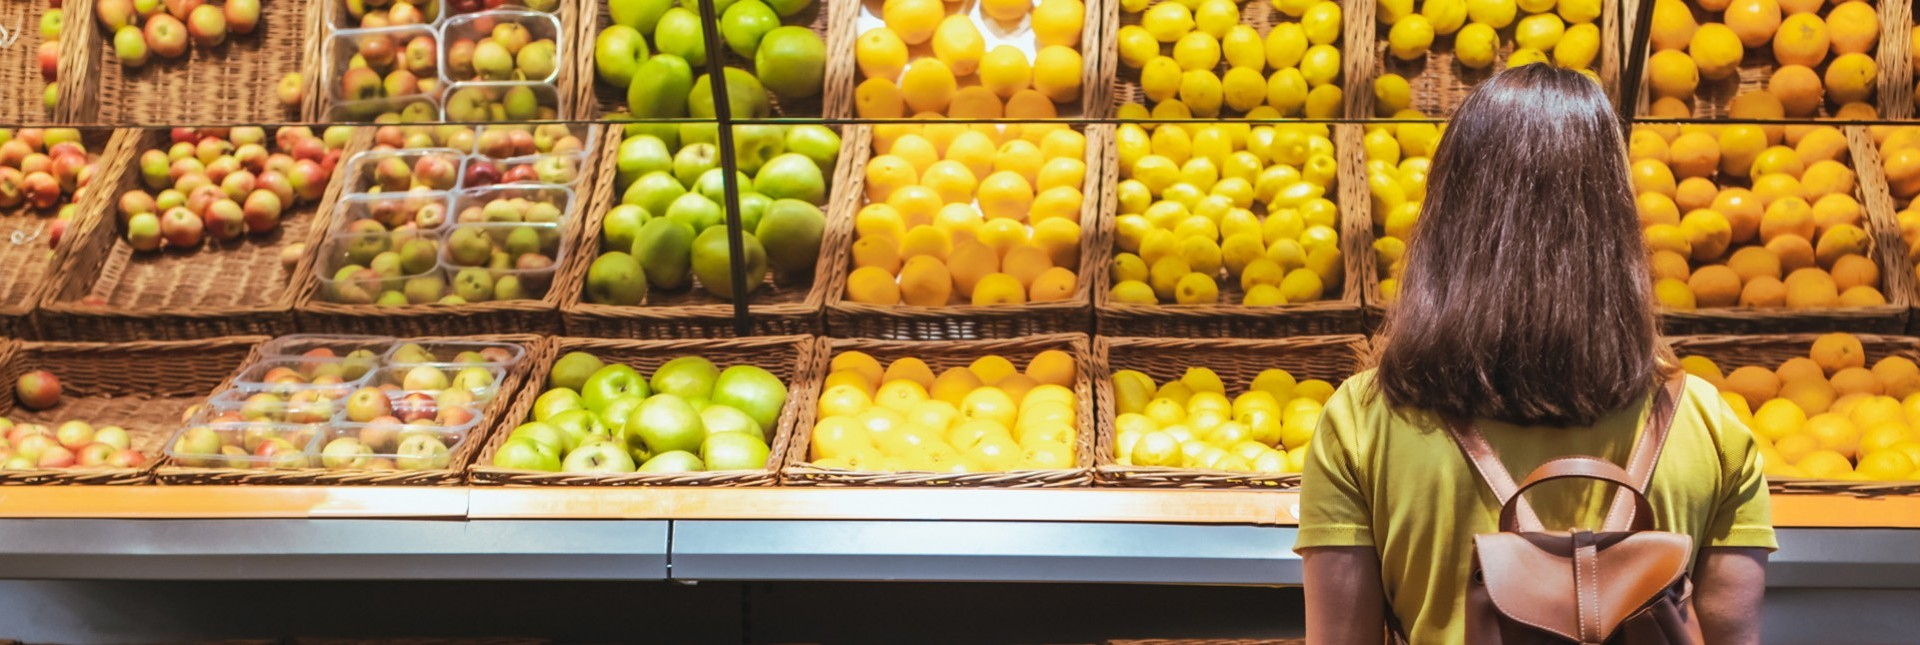 Grocery Shopping & Nutritional Trade-offs